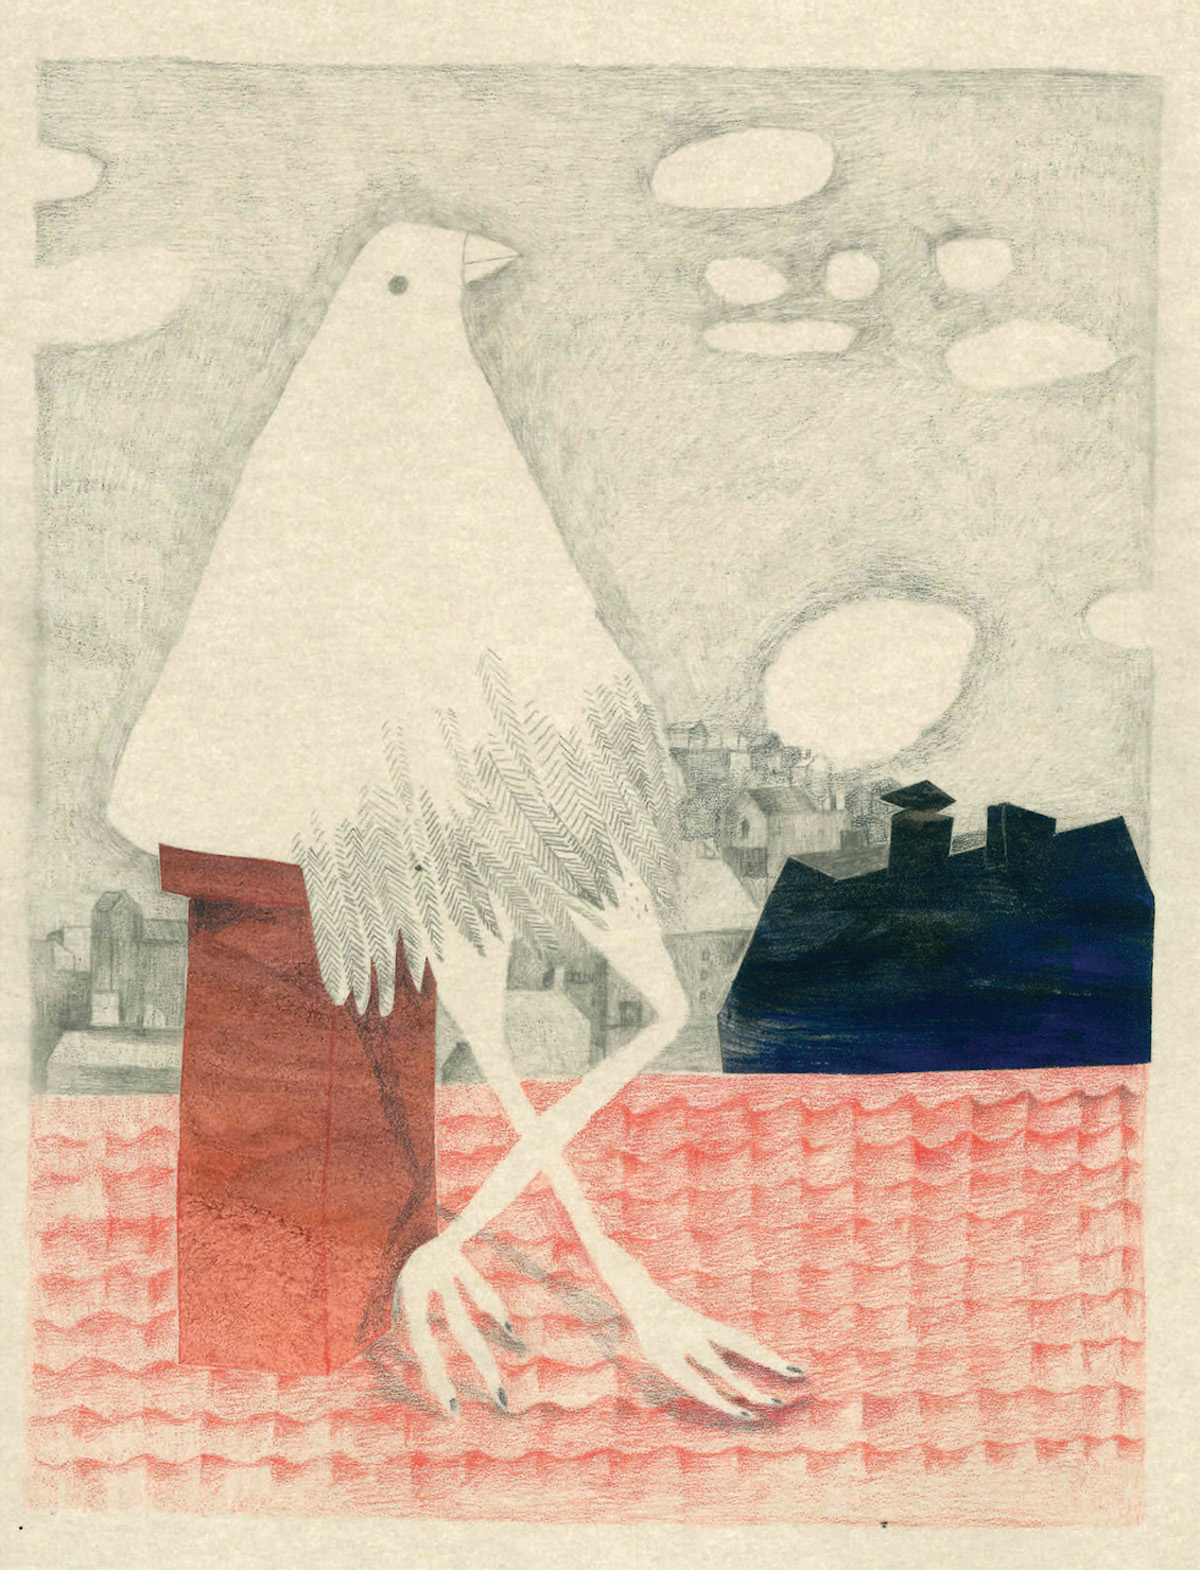 Loneliness and Belonging Explored in a New Children's Book of Poetry and Mixed-Media Illustrations